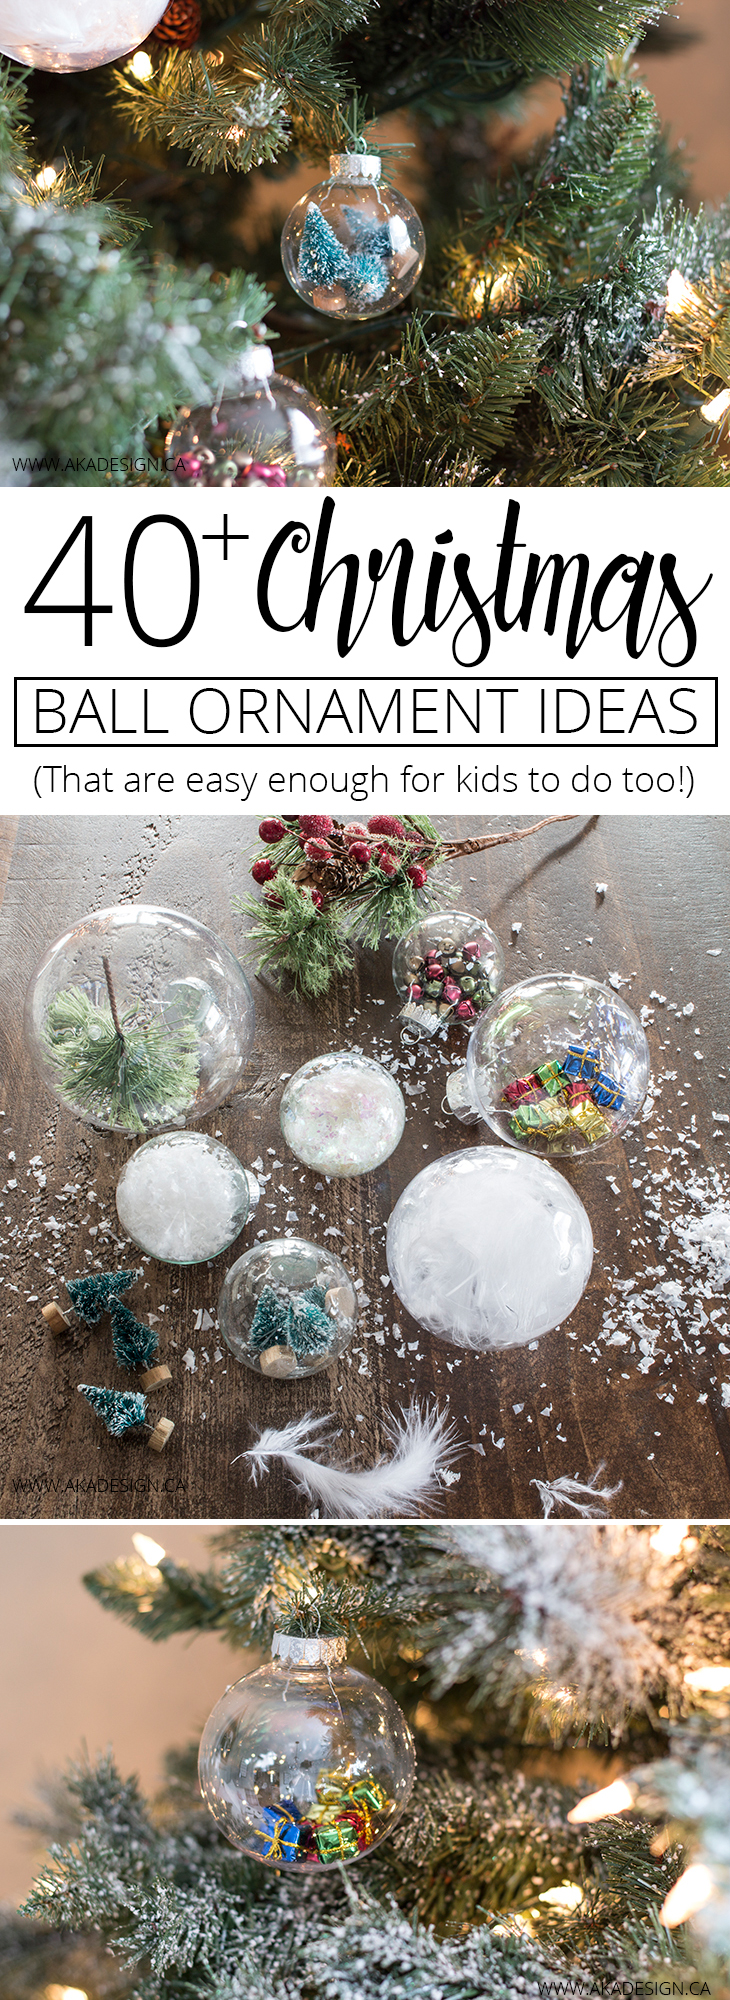 40 Christmas Ball Ornament Ideas For You To Try This Year